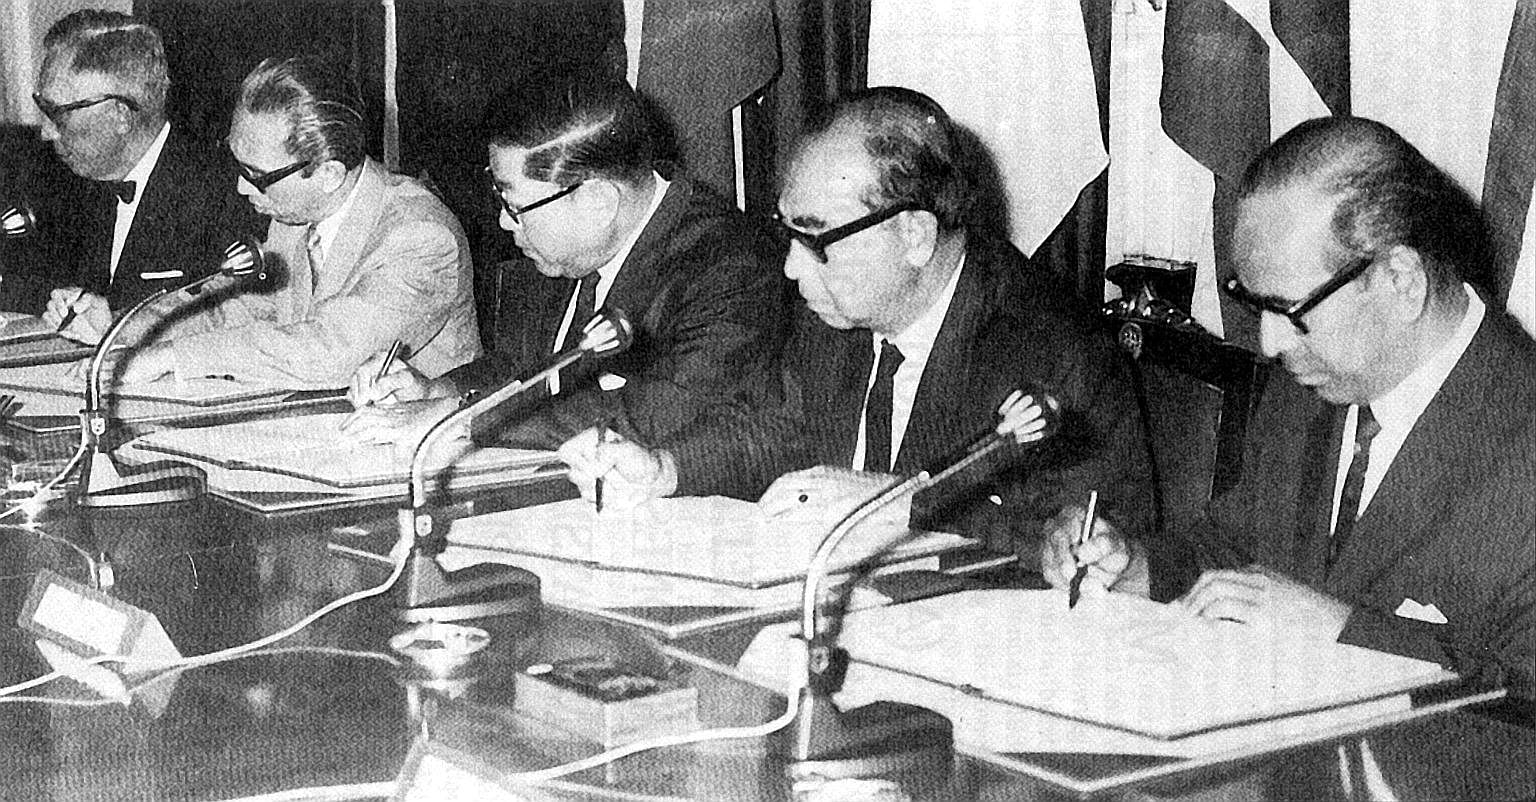 Singapore's foreign minister S. Rajaratnam (far right) at the historic meeting in Bangkok to sign the founding of Asean declaration on Aug 8, 1967, together with (from left) foreign ministers Narciso Ramos of the Philippines, Adam Malik of Indonesia,